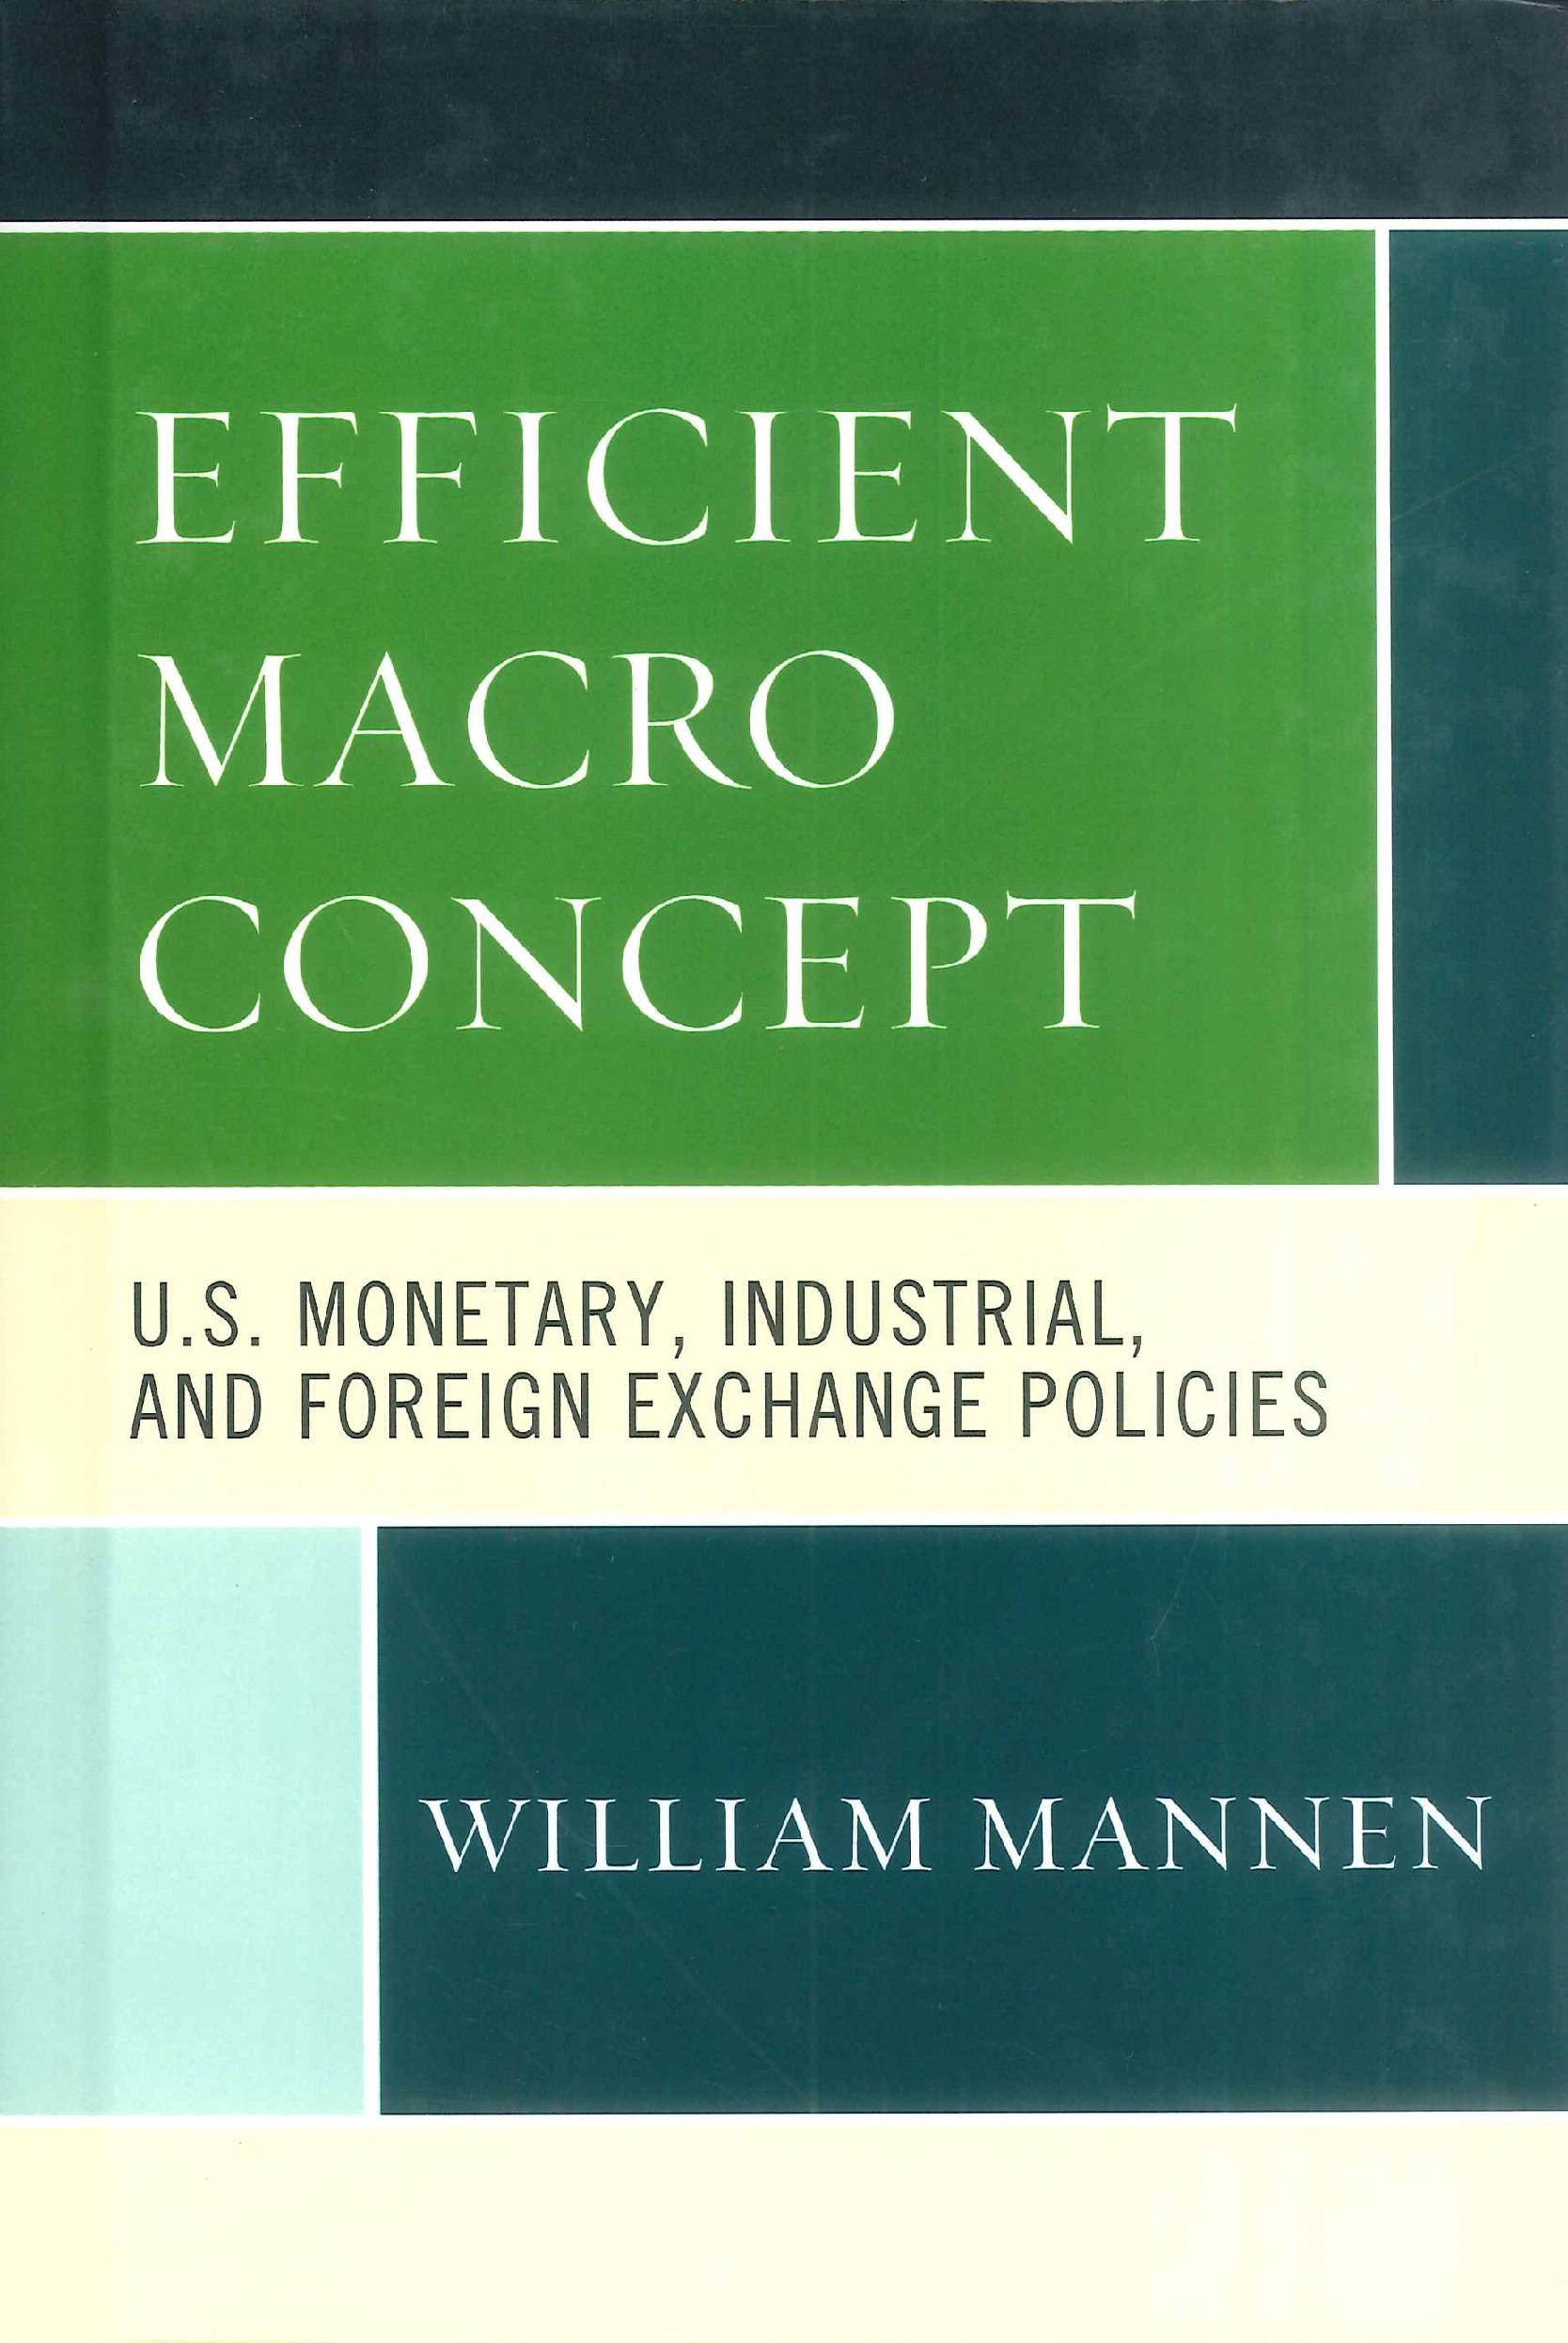 Efficient macro concept:U.S. monetary, industrial, and foreign exchange policies